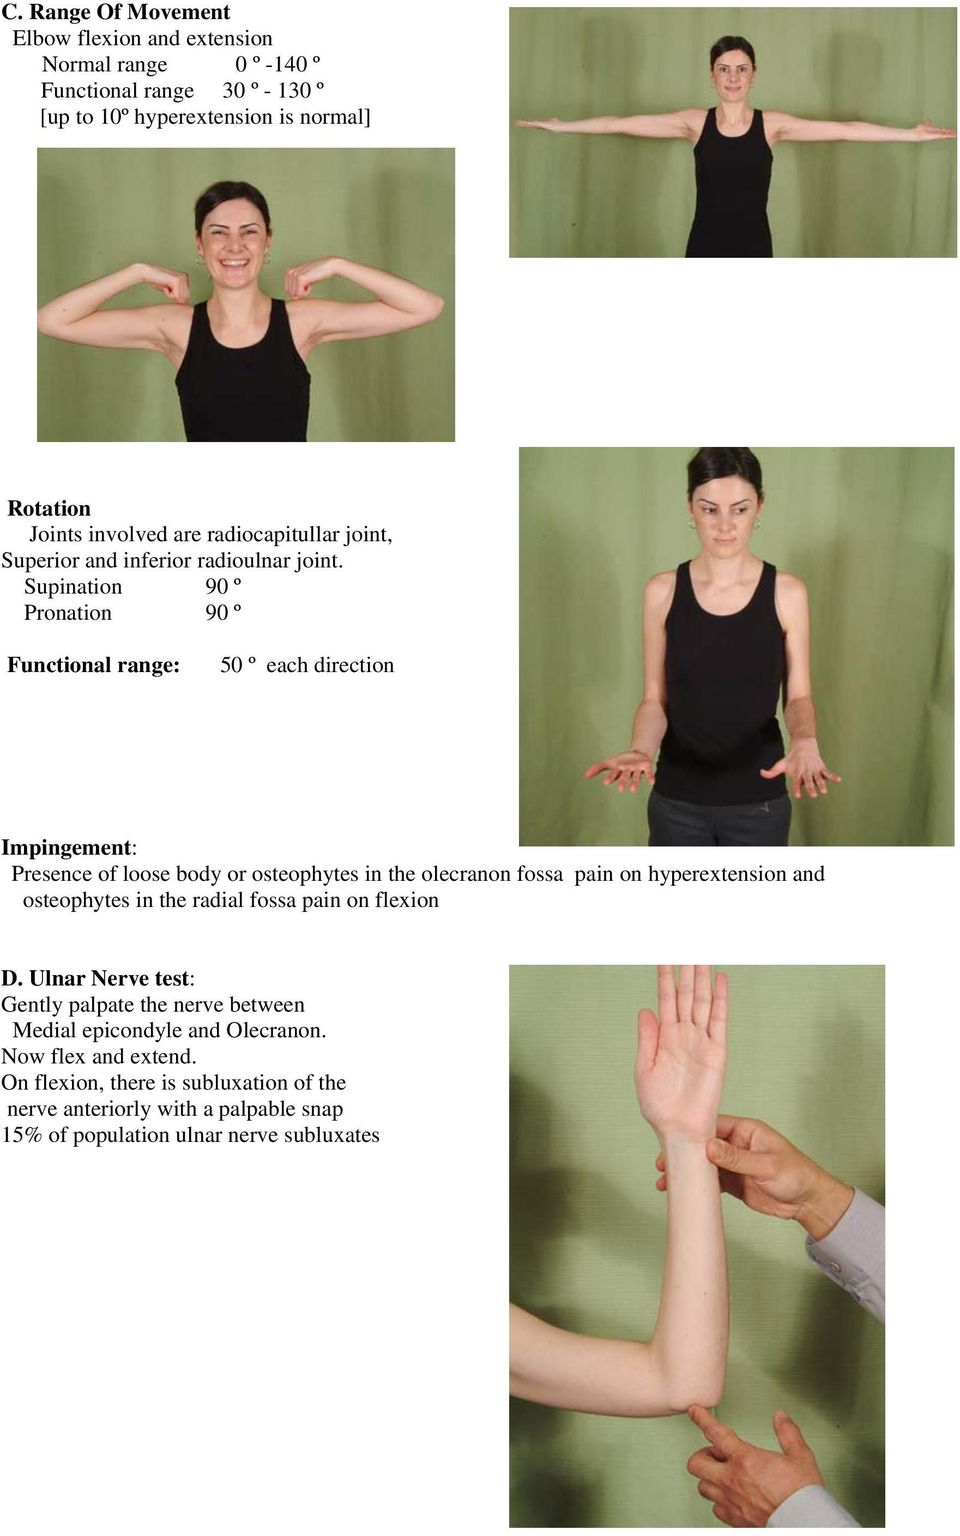 Supination 90 º Pronation 90 º Functional range: 50 º each direction Impingement: Presence of loose body or osteophytes in the olecranon fossa pain on hyperextension